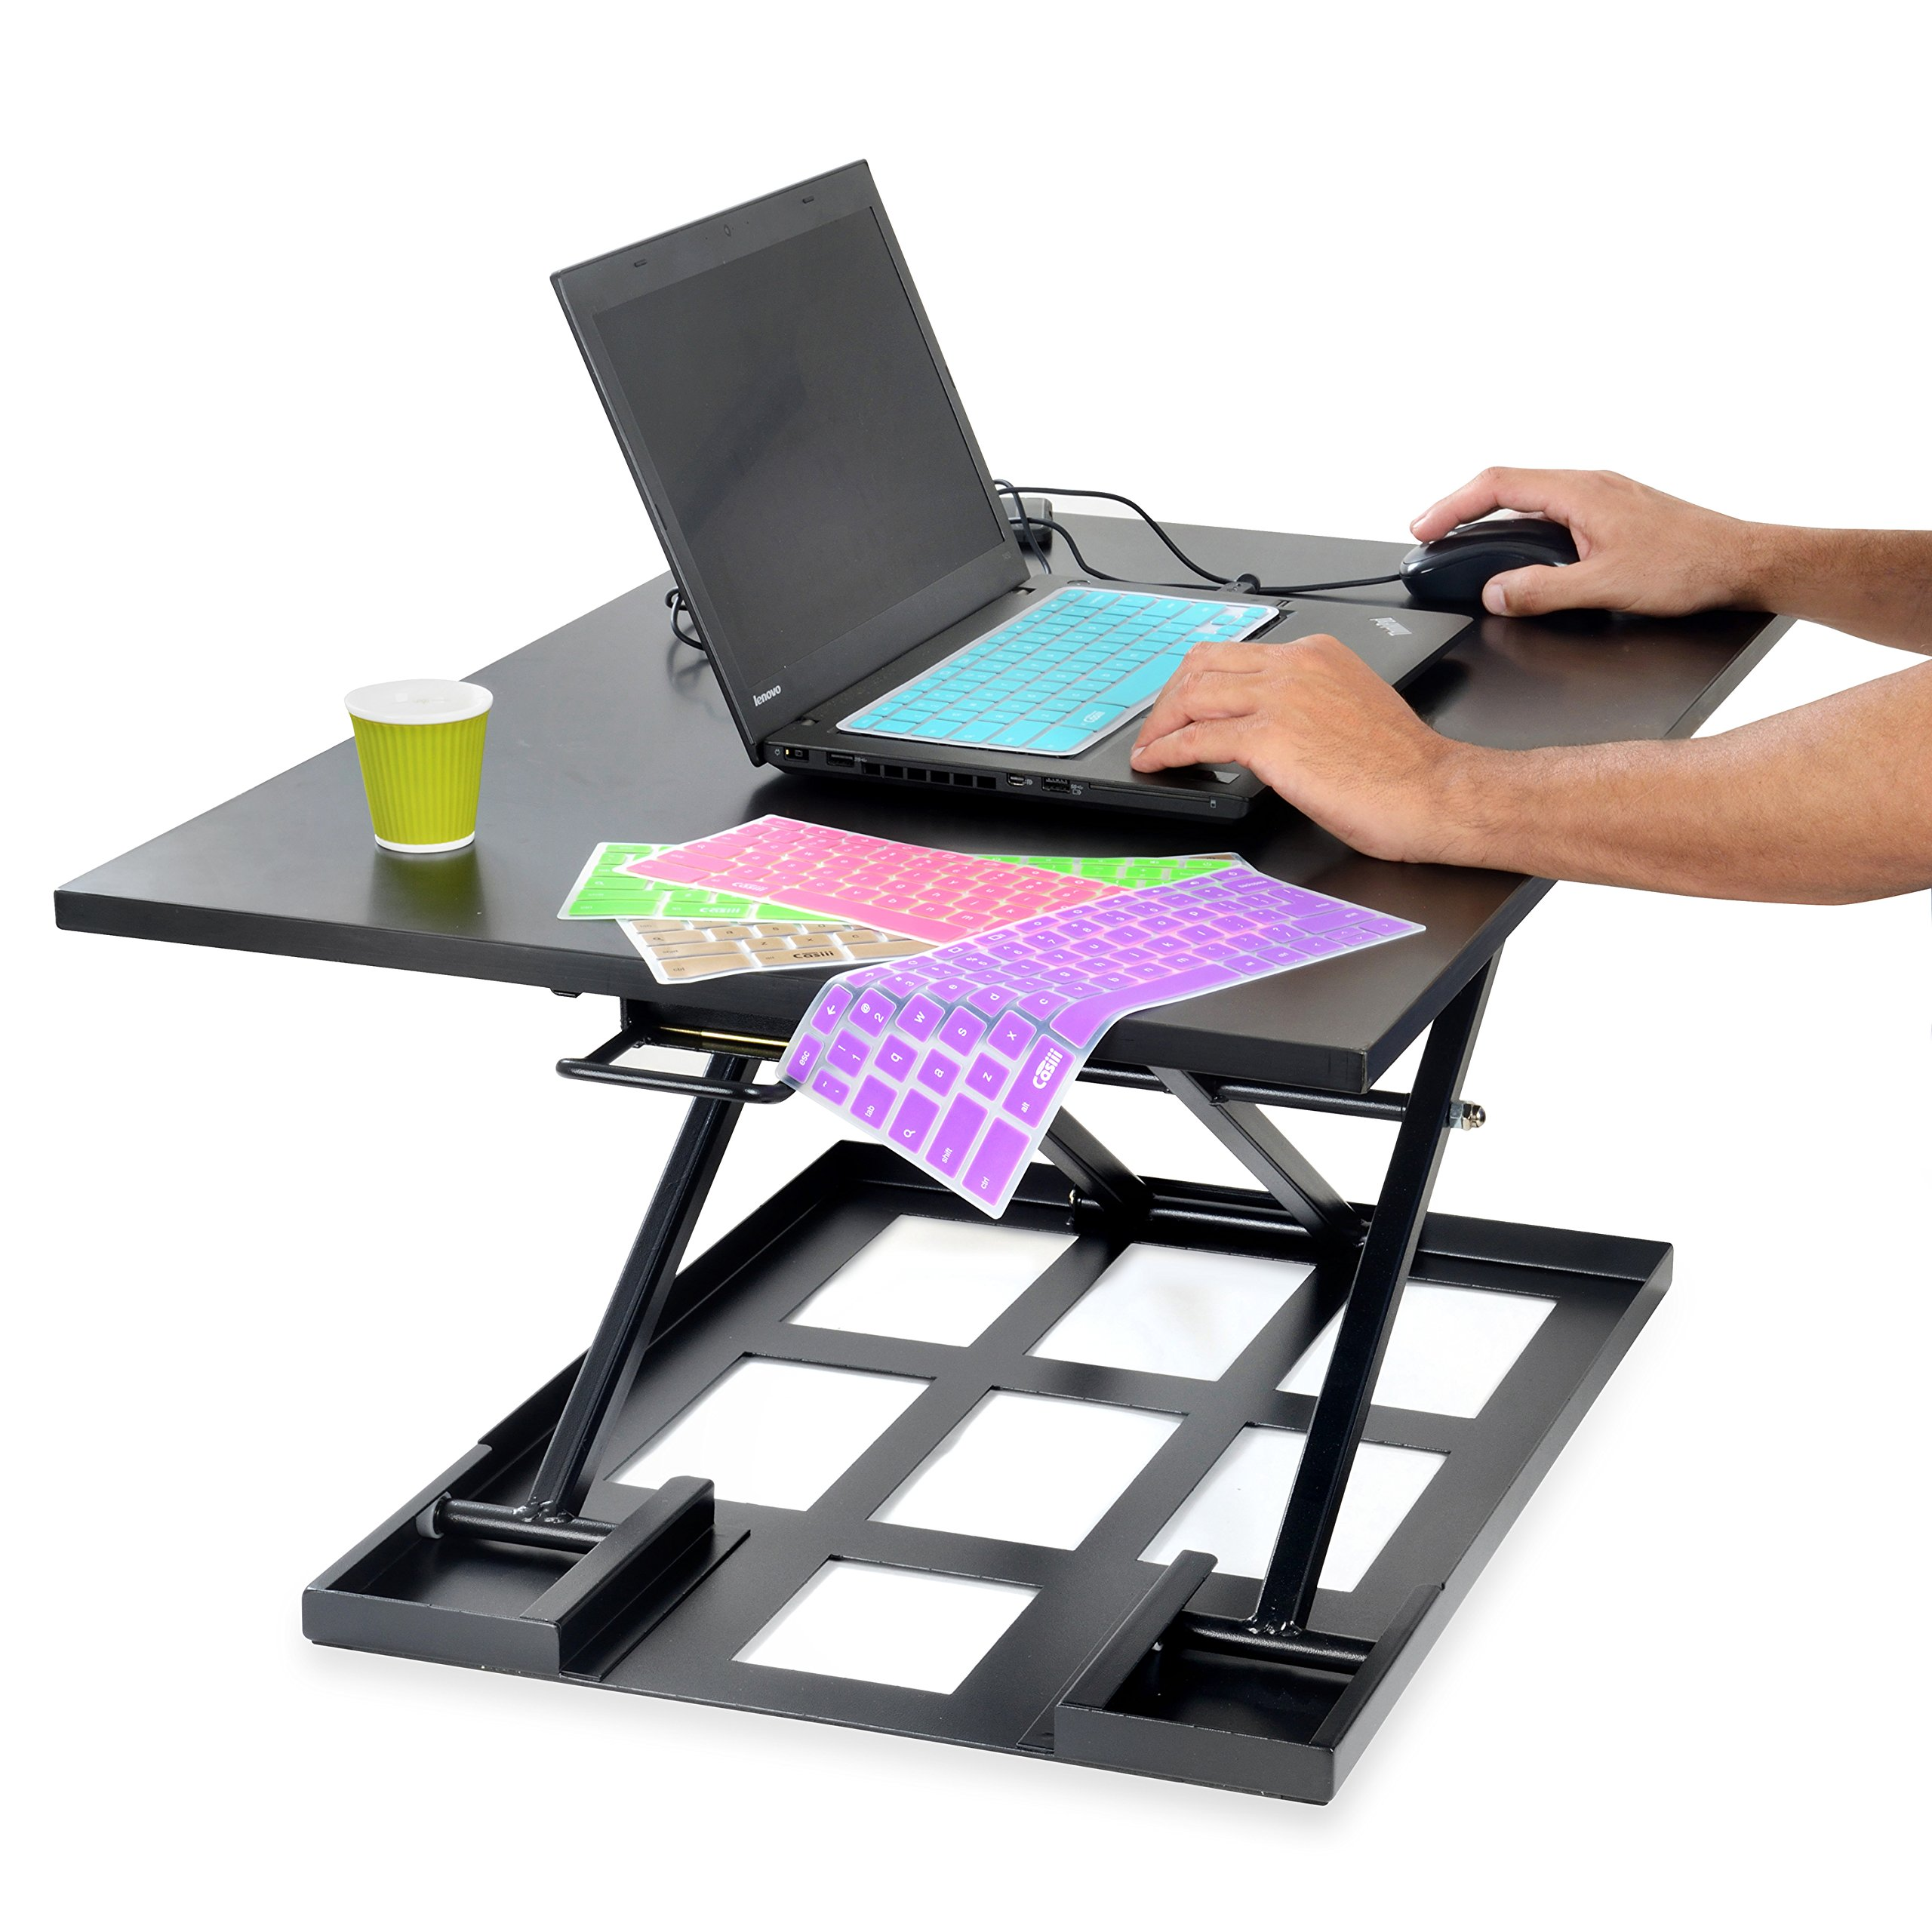 Best Standing Desk, Adjustable Height Riser Converter, Stand Up or Sit Down, 32'' Black Office Desktop, Computer Monitor & Laptop Workspace, Unlimited Ergonomic Positions for Better Health, Casiii UP32 by Casiii (Image #3)